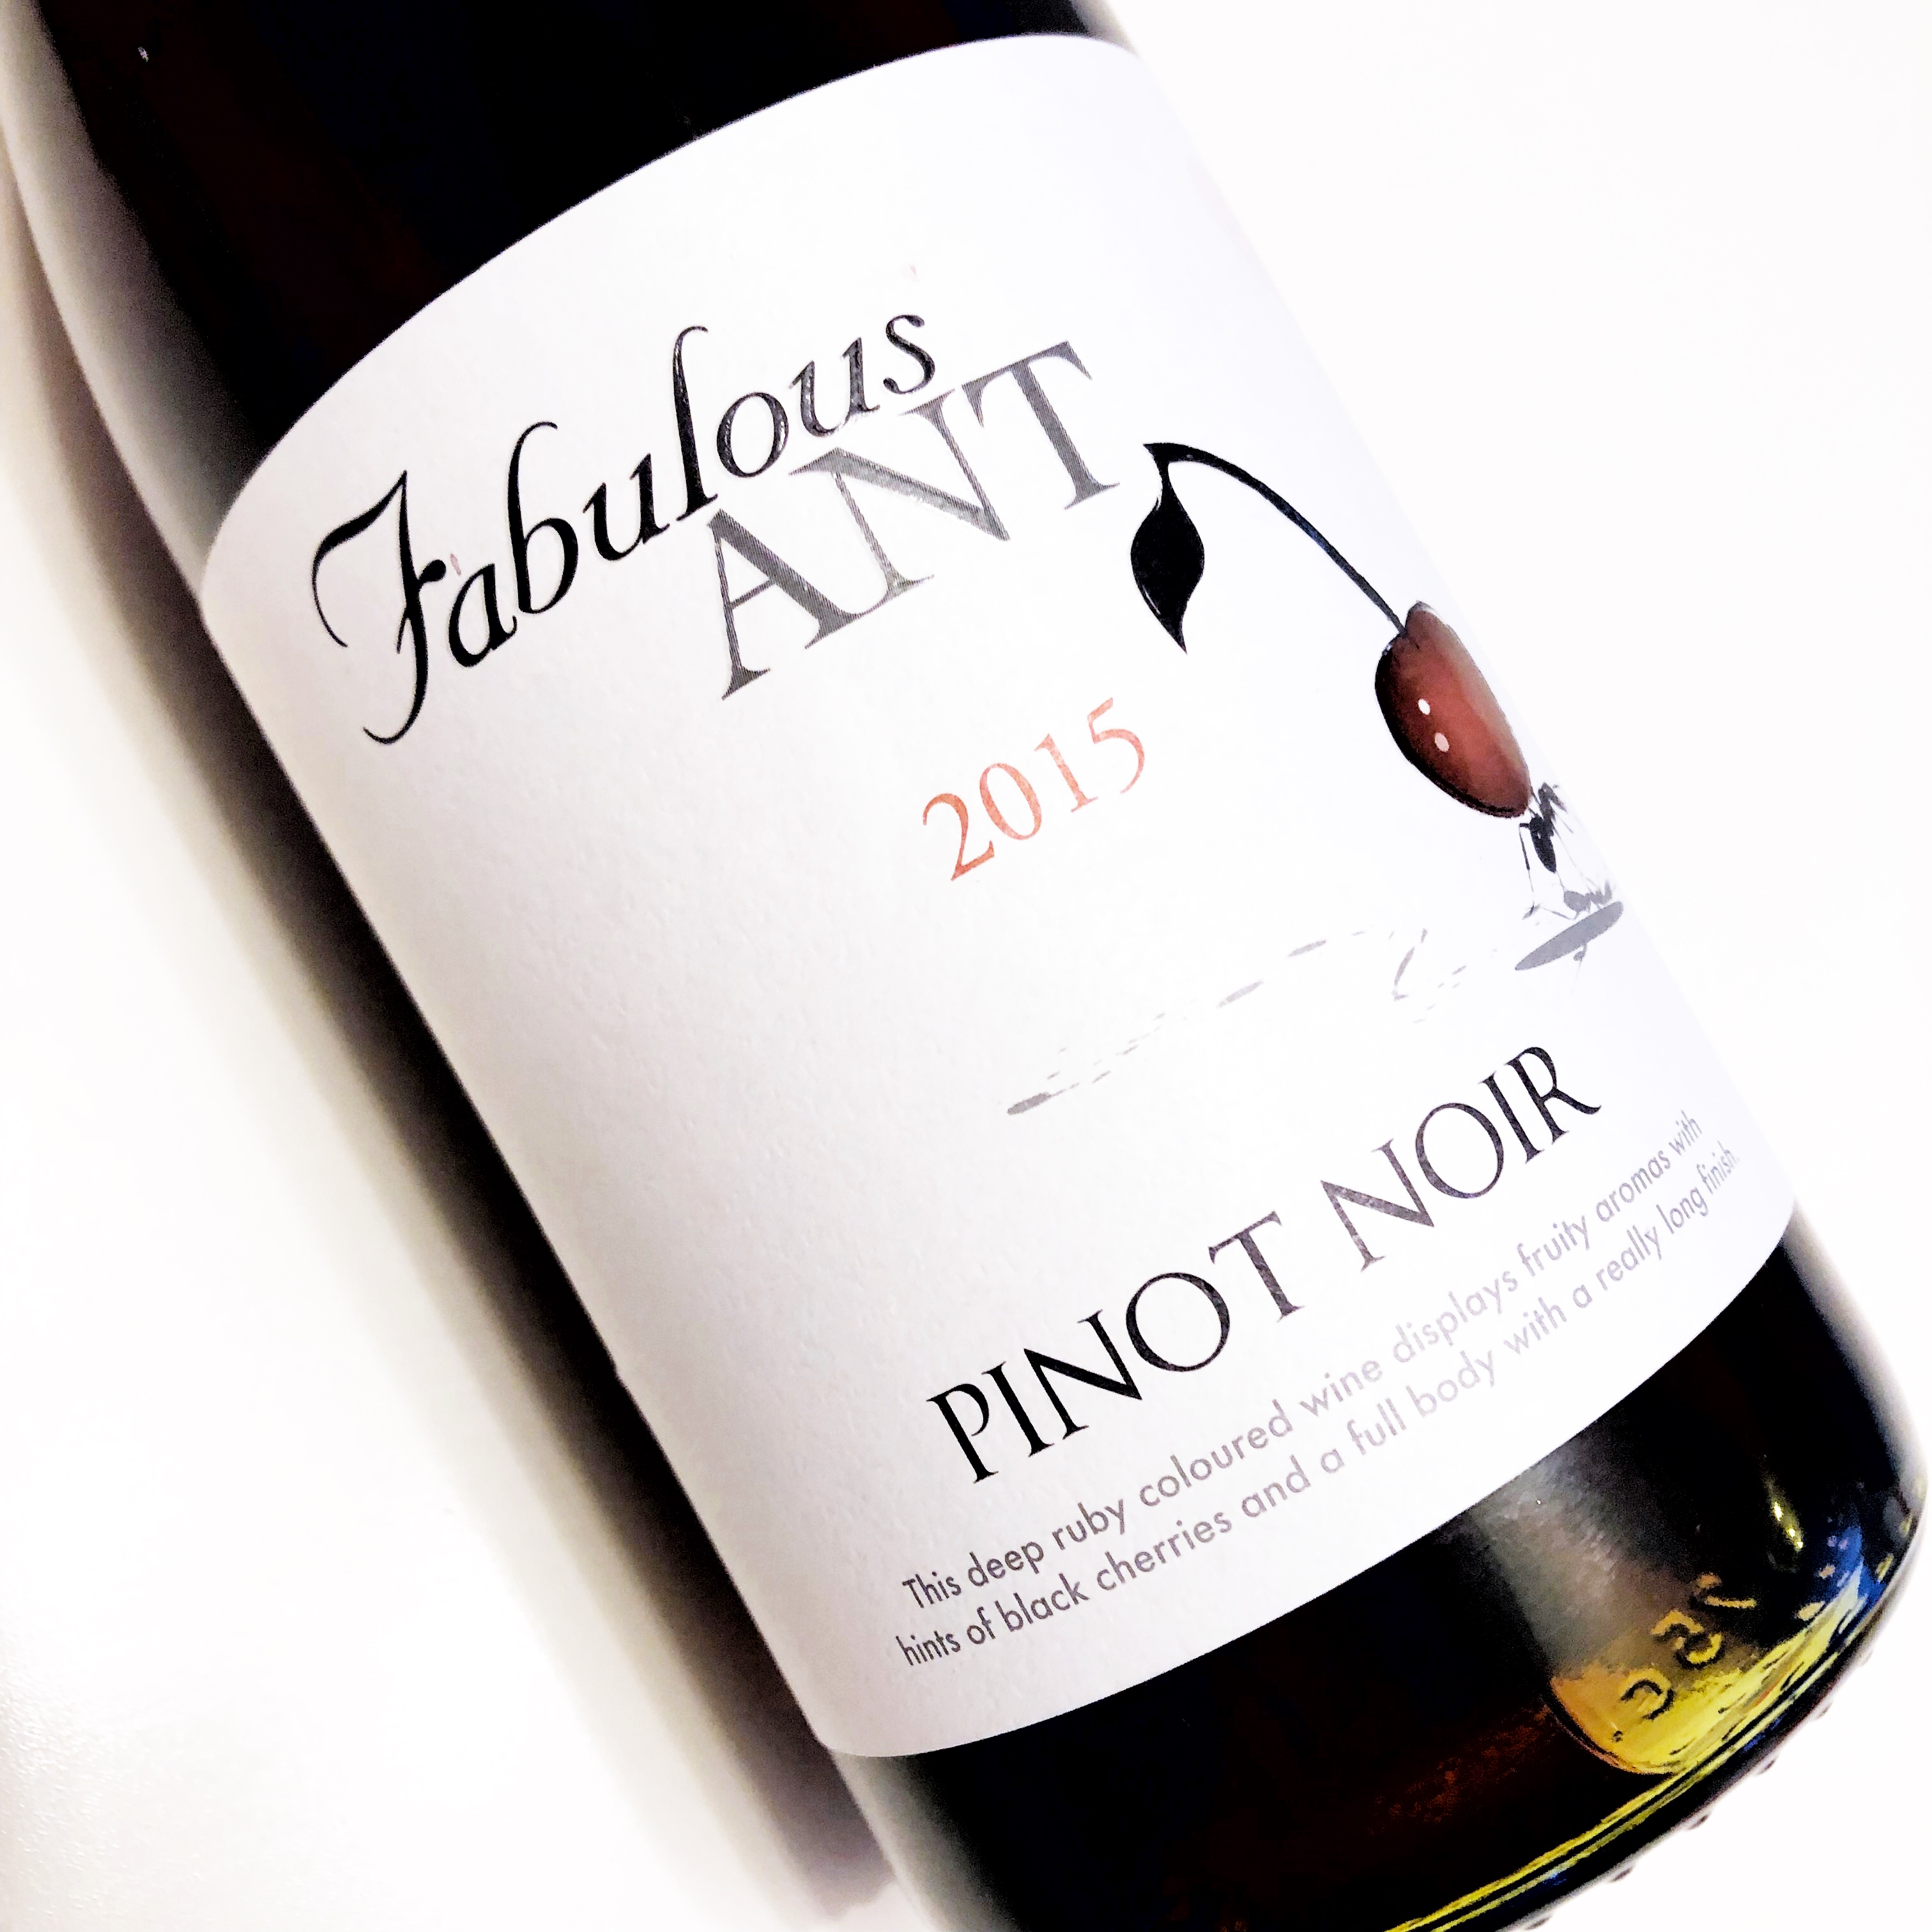 Fabulous Ant Pinot Noir - Valentine's Day wine